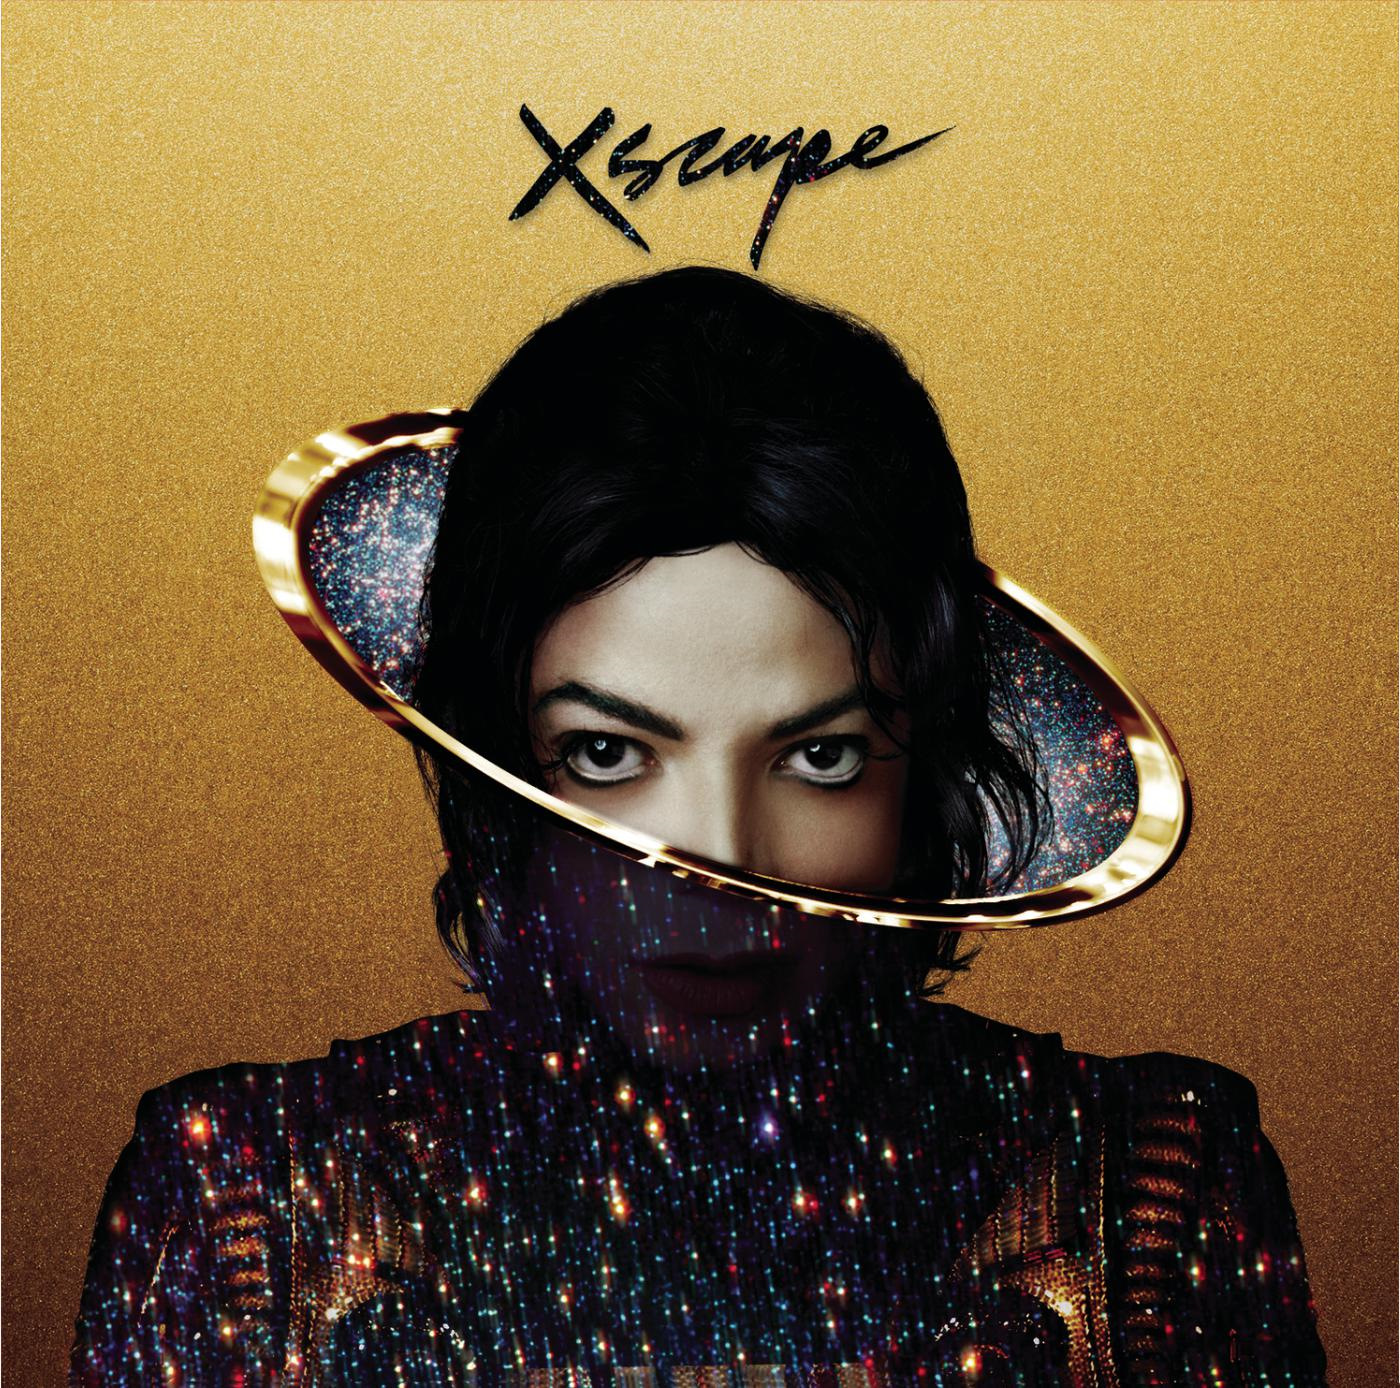 Michael Jackson — Xscape (Deluxe HD Version) (2014) Qobuz [FLAC 24